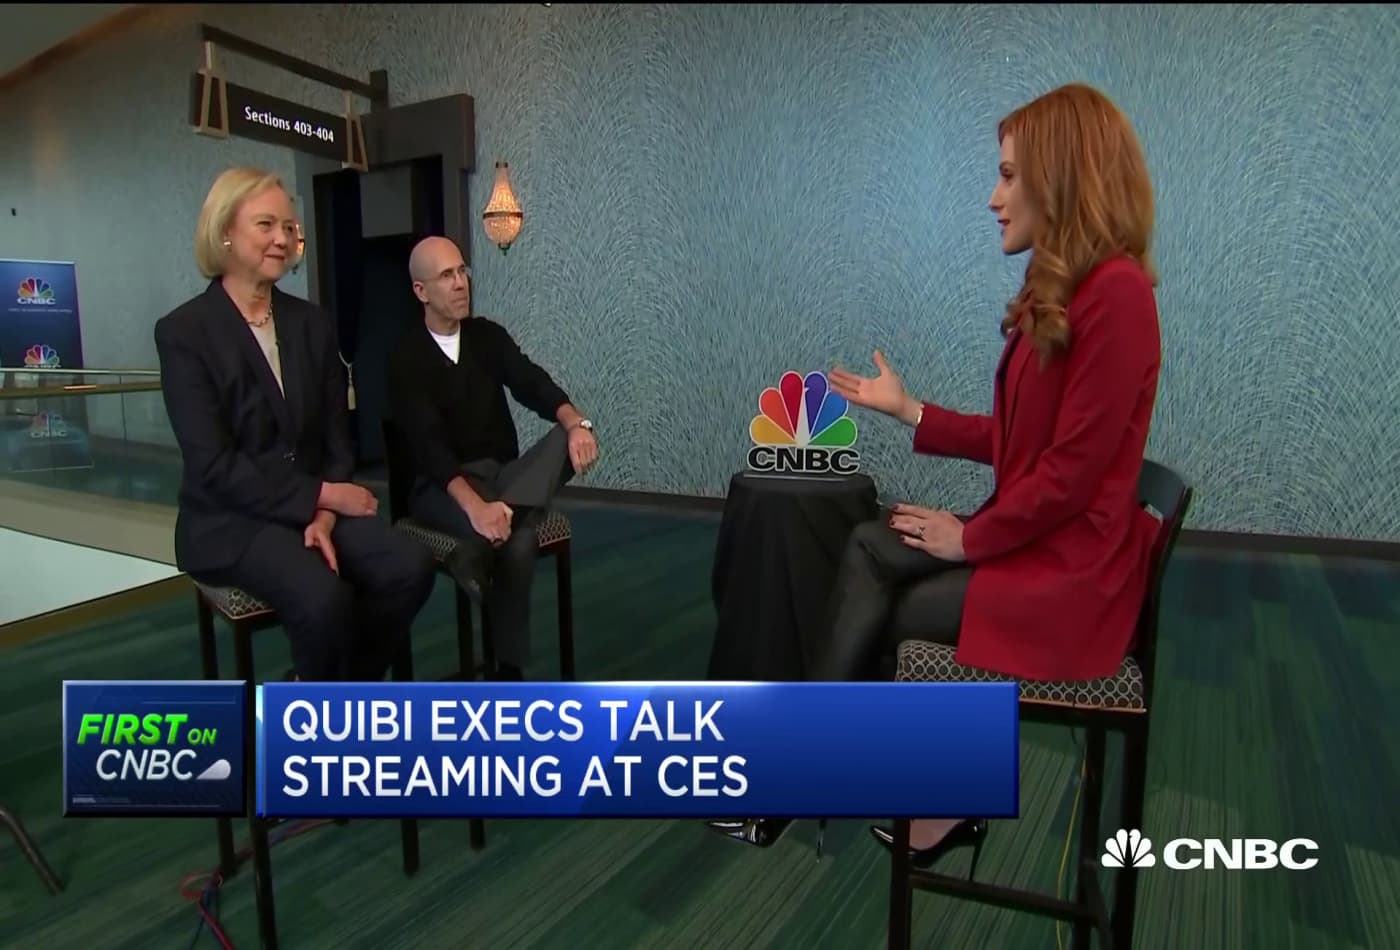 Quibi executives on how it will transform the storytelling landscape